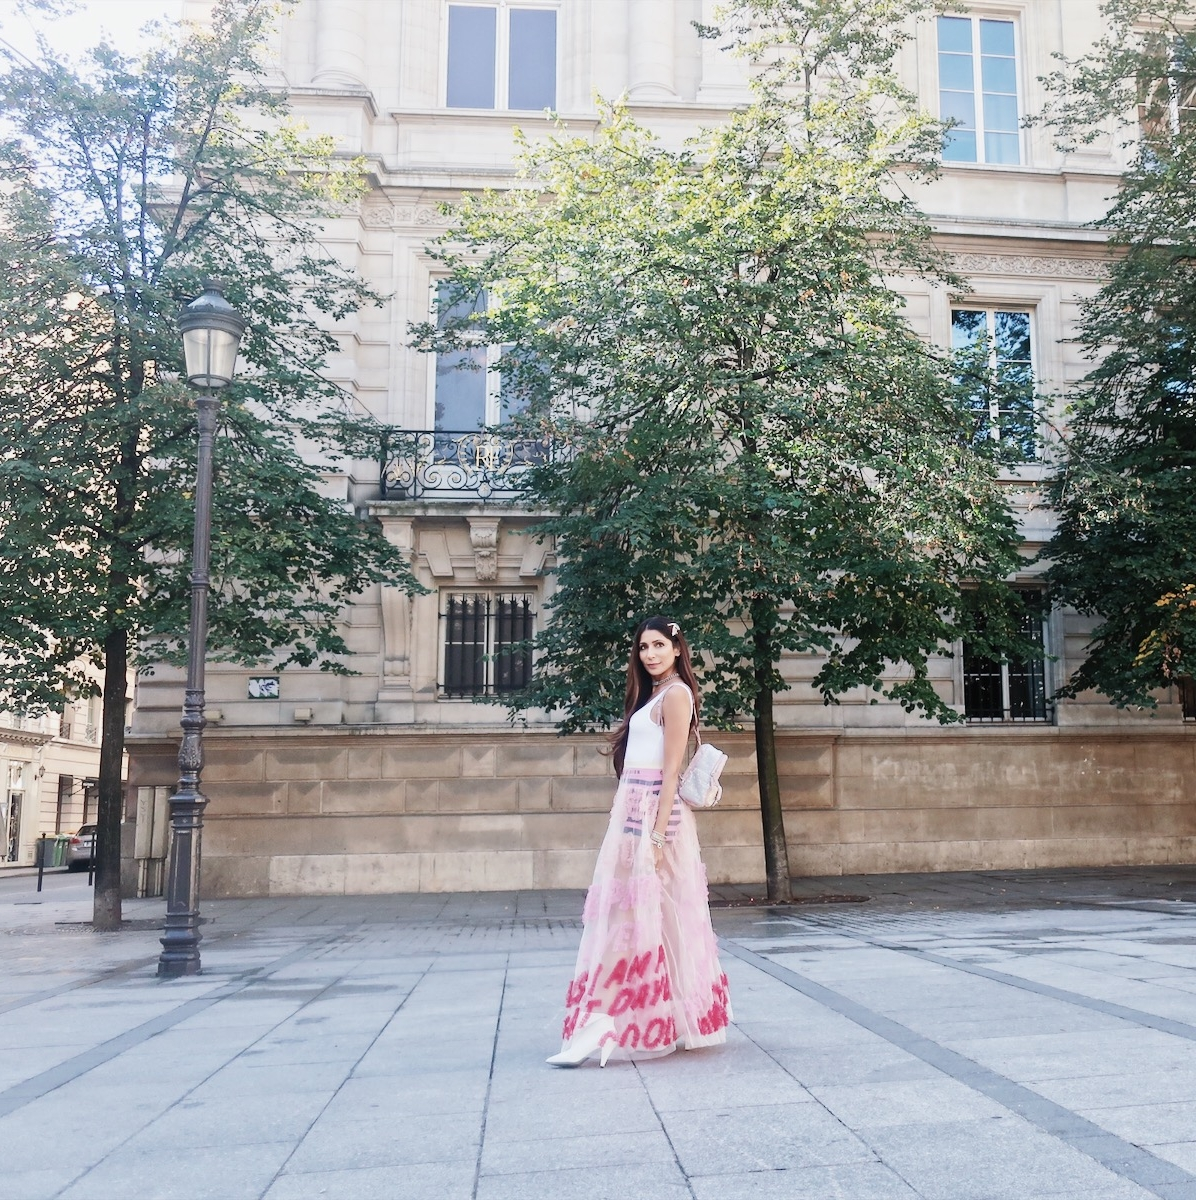 """Heading to    Manish Arora's    show. Bumped into my friends on the way, who were taking a break from the shows and of course, an """"impromptu"""" photoshoot ensued:)"""